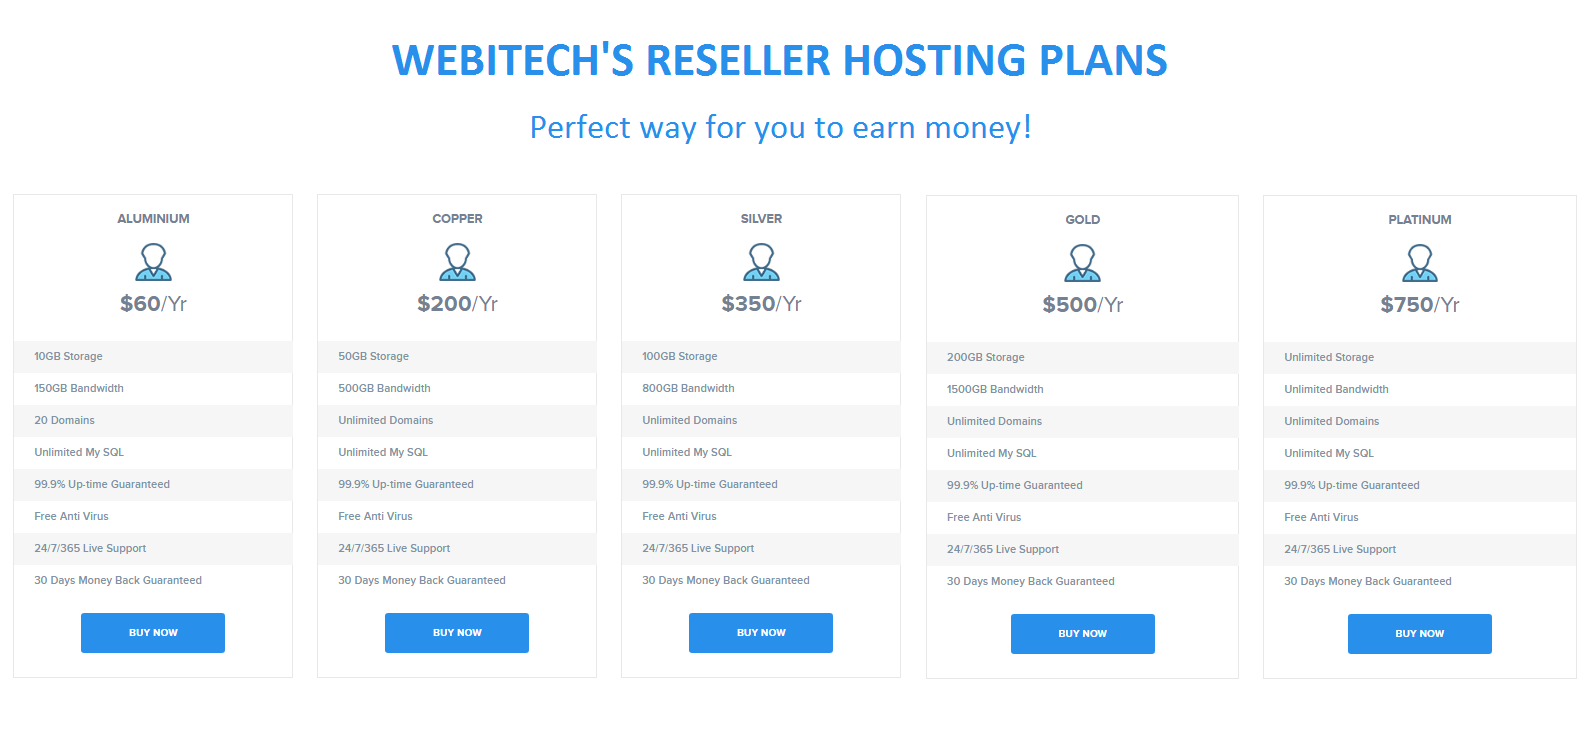 Reseller Hosting Plans by WebITech